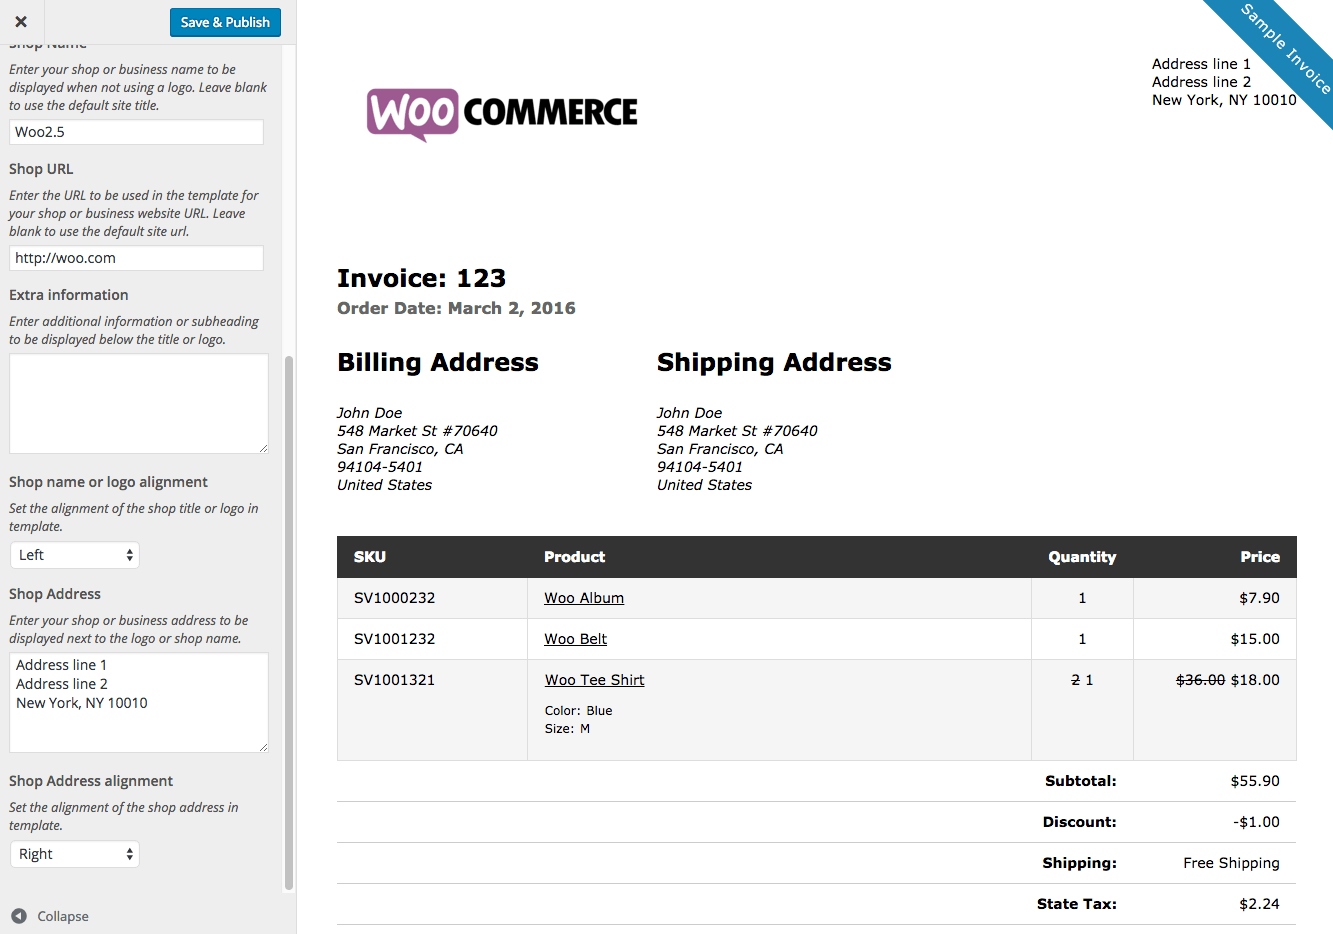 Reliefworkersus  Unusual Woocommerce Print Invoices Amp Packing Lists  Woocommerce Docs With Foxy Woocommerce Print Invoices  Packing Lists Customizer With Lovely At T Invoice Also How To Create An Invoice On Word In Addition Proposal Invoice Template And Free Invoice Templates Pdf As Well As International Invoice Template Additionally Invoicing Tools From Docswoocommercecom With Reliefworkersus  Foxy Woocommerce Print Invoices Amp Packing Lists  Woocommerce Docs With Lovely Woocommerce Print Invoices  Packing Lists Customizer And Unusual At T Invoice Also How To Create An Invoice On Word In Addition Proposal Invoice Template From Docswoocommercecom